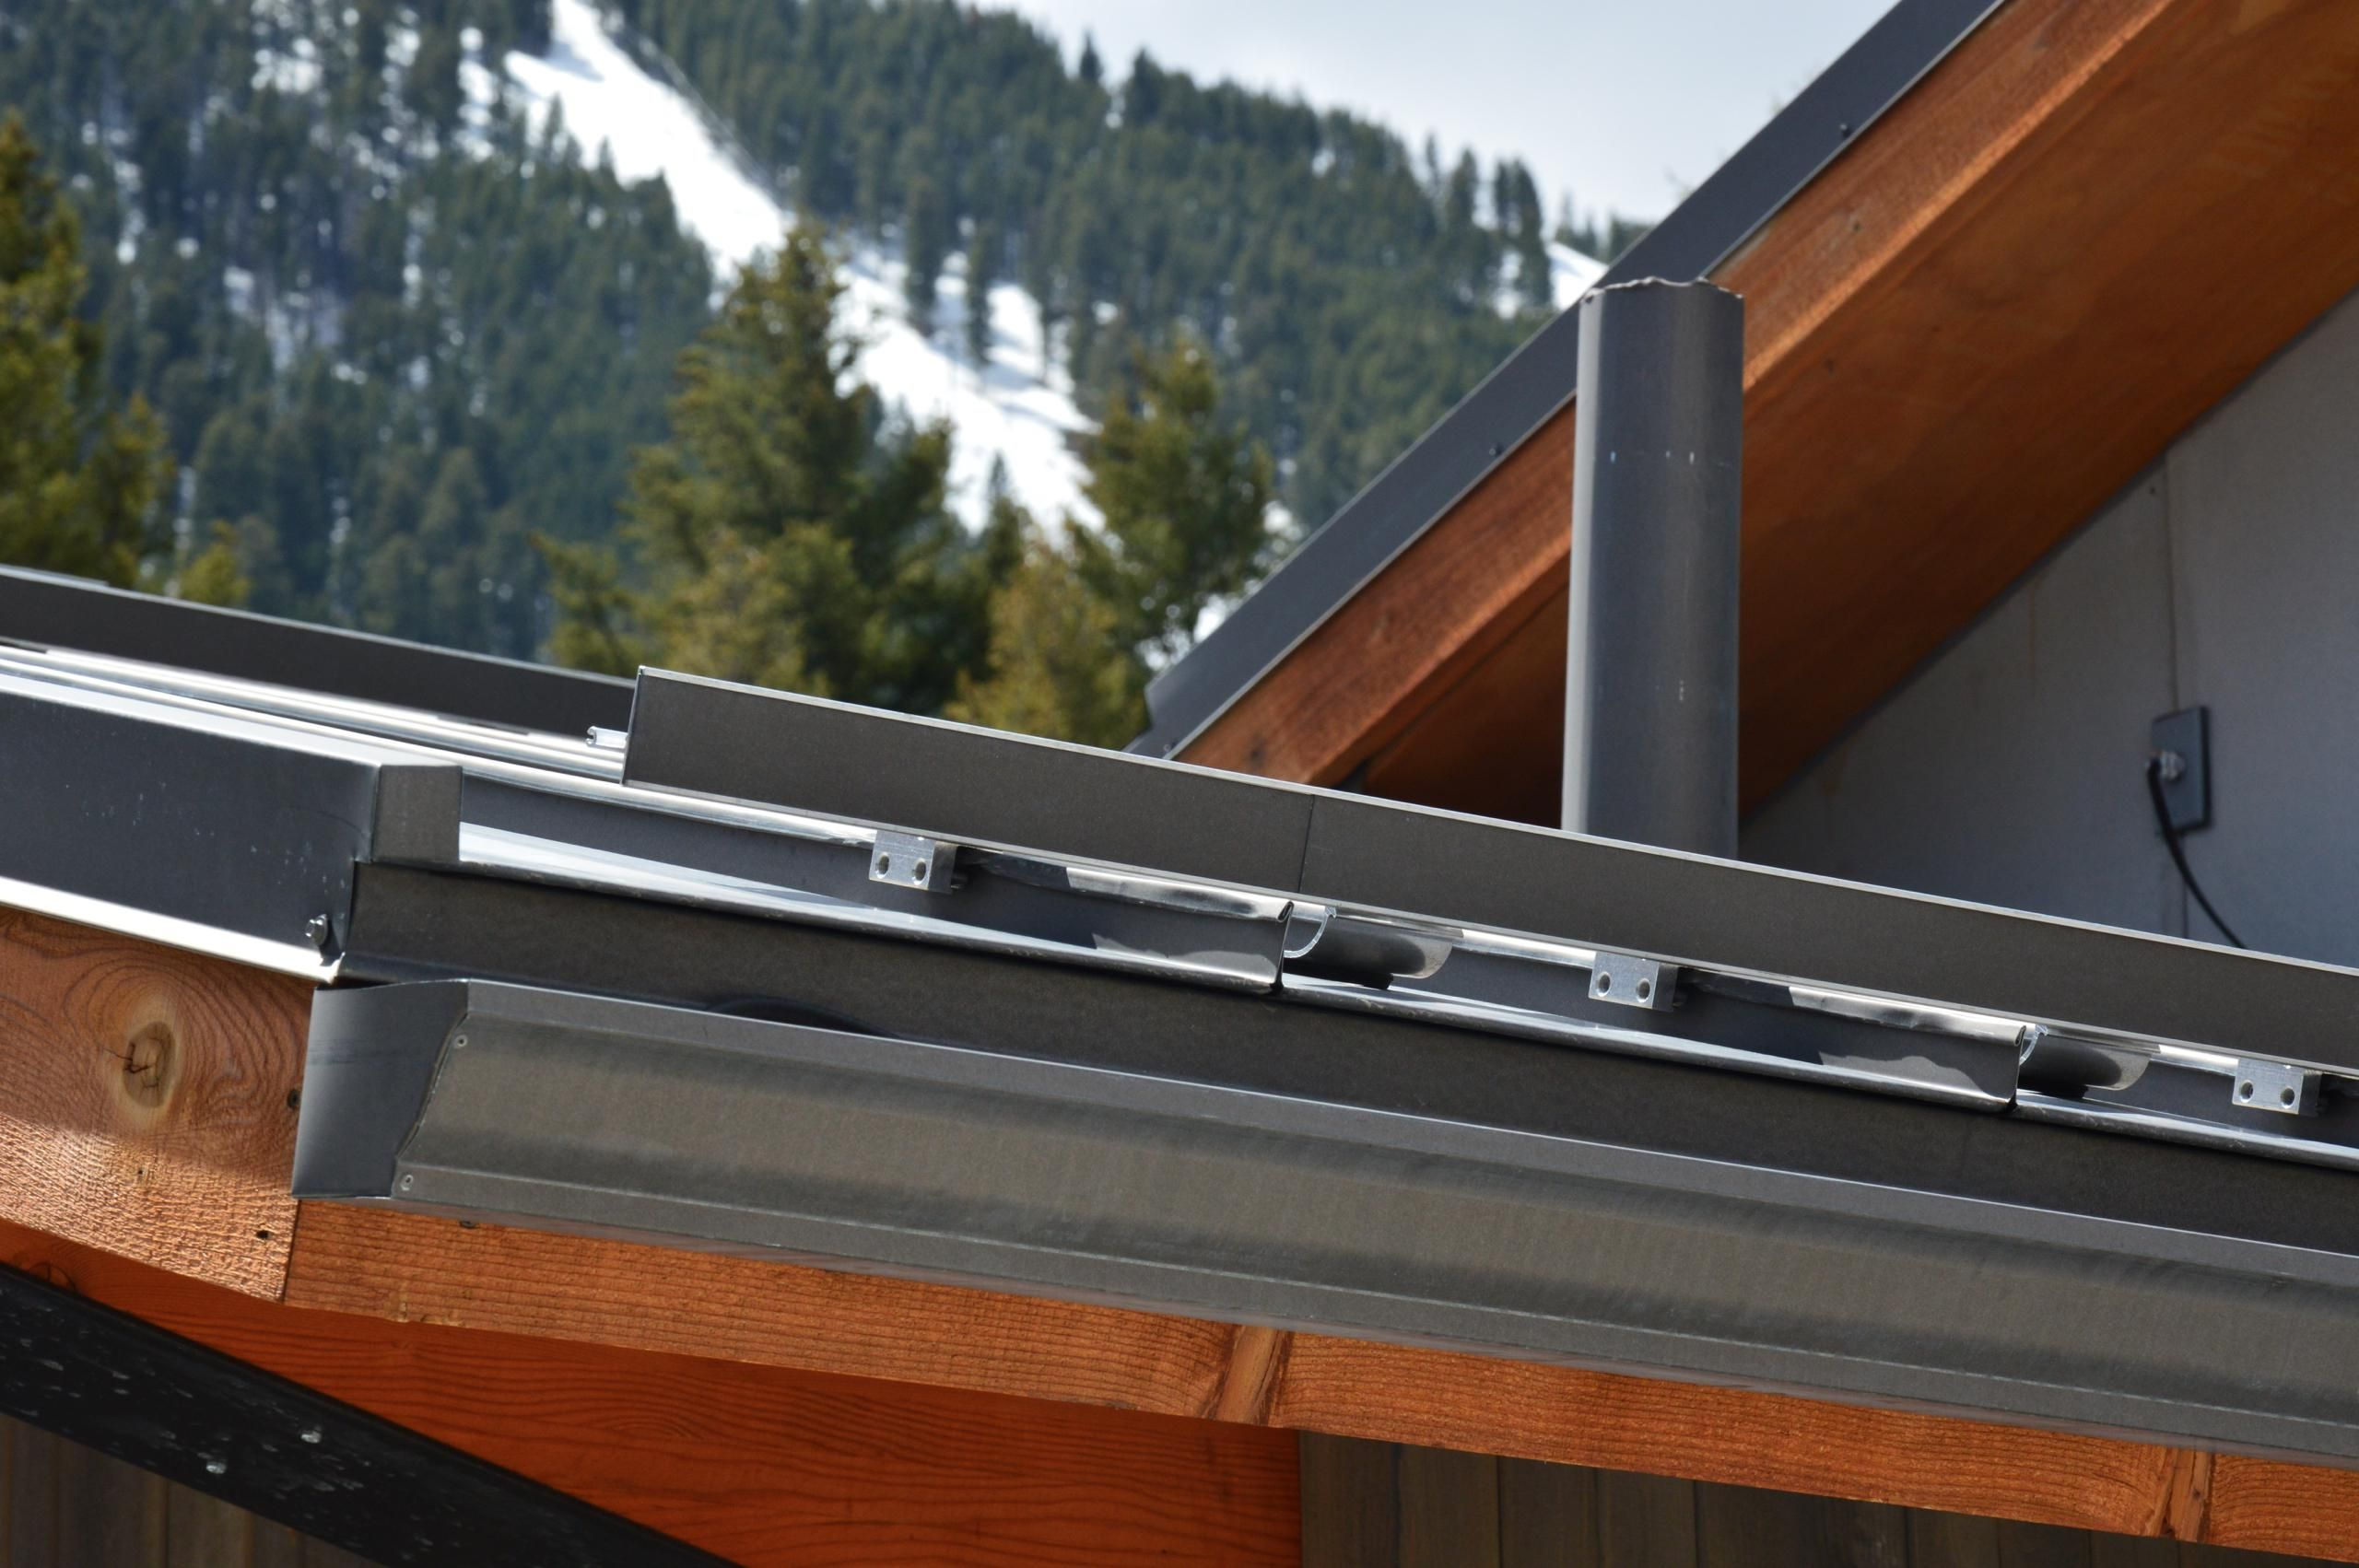 Bonderized Metal Roofing W Gutter Detail Snow Retention System Commercial Metal Roofing Standing Seam Metal Roof Roofing